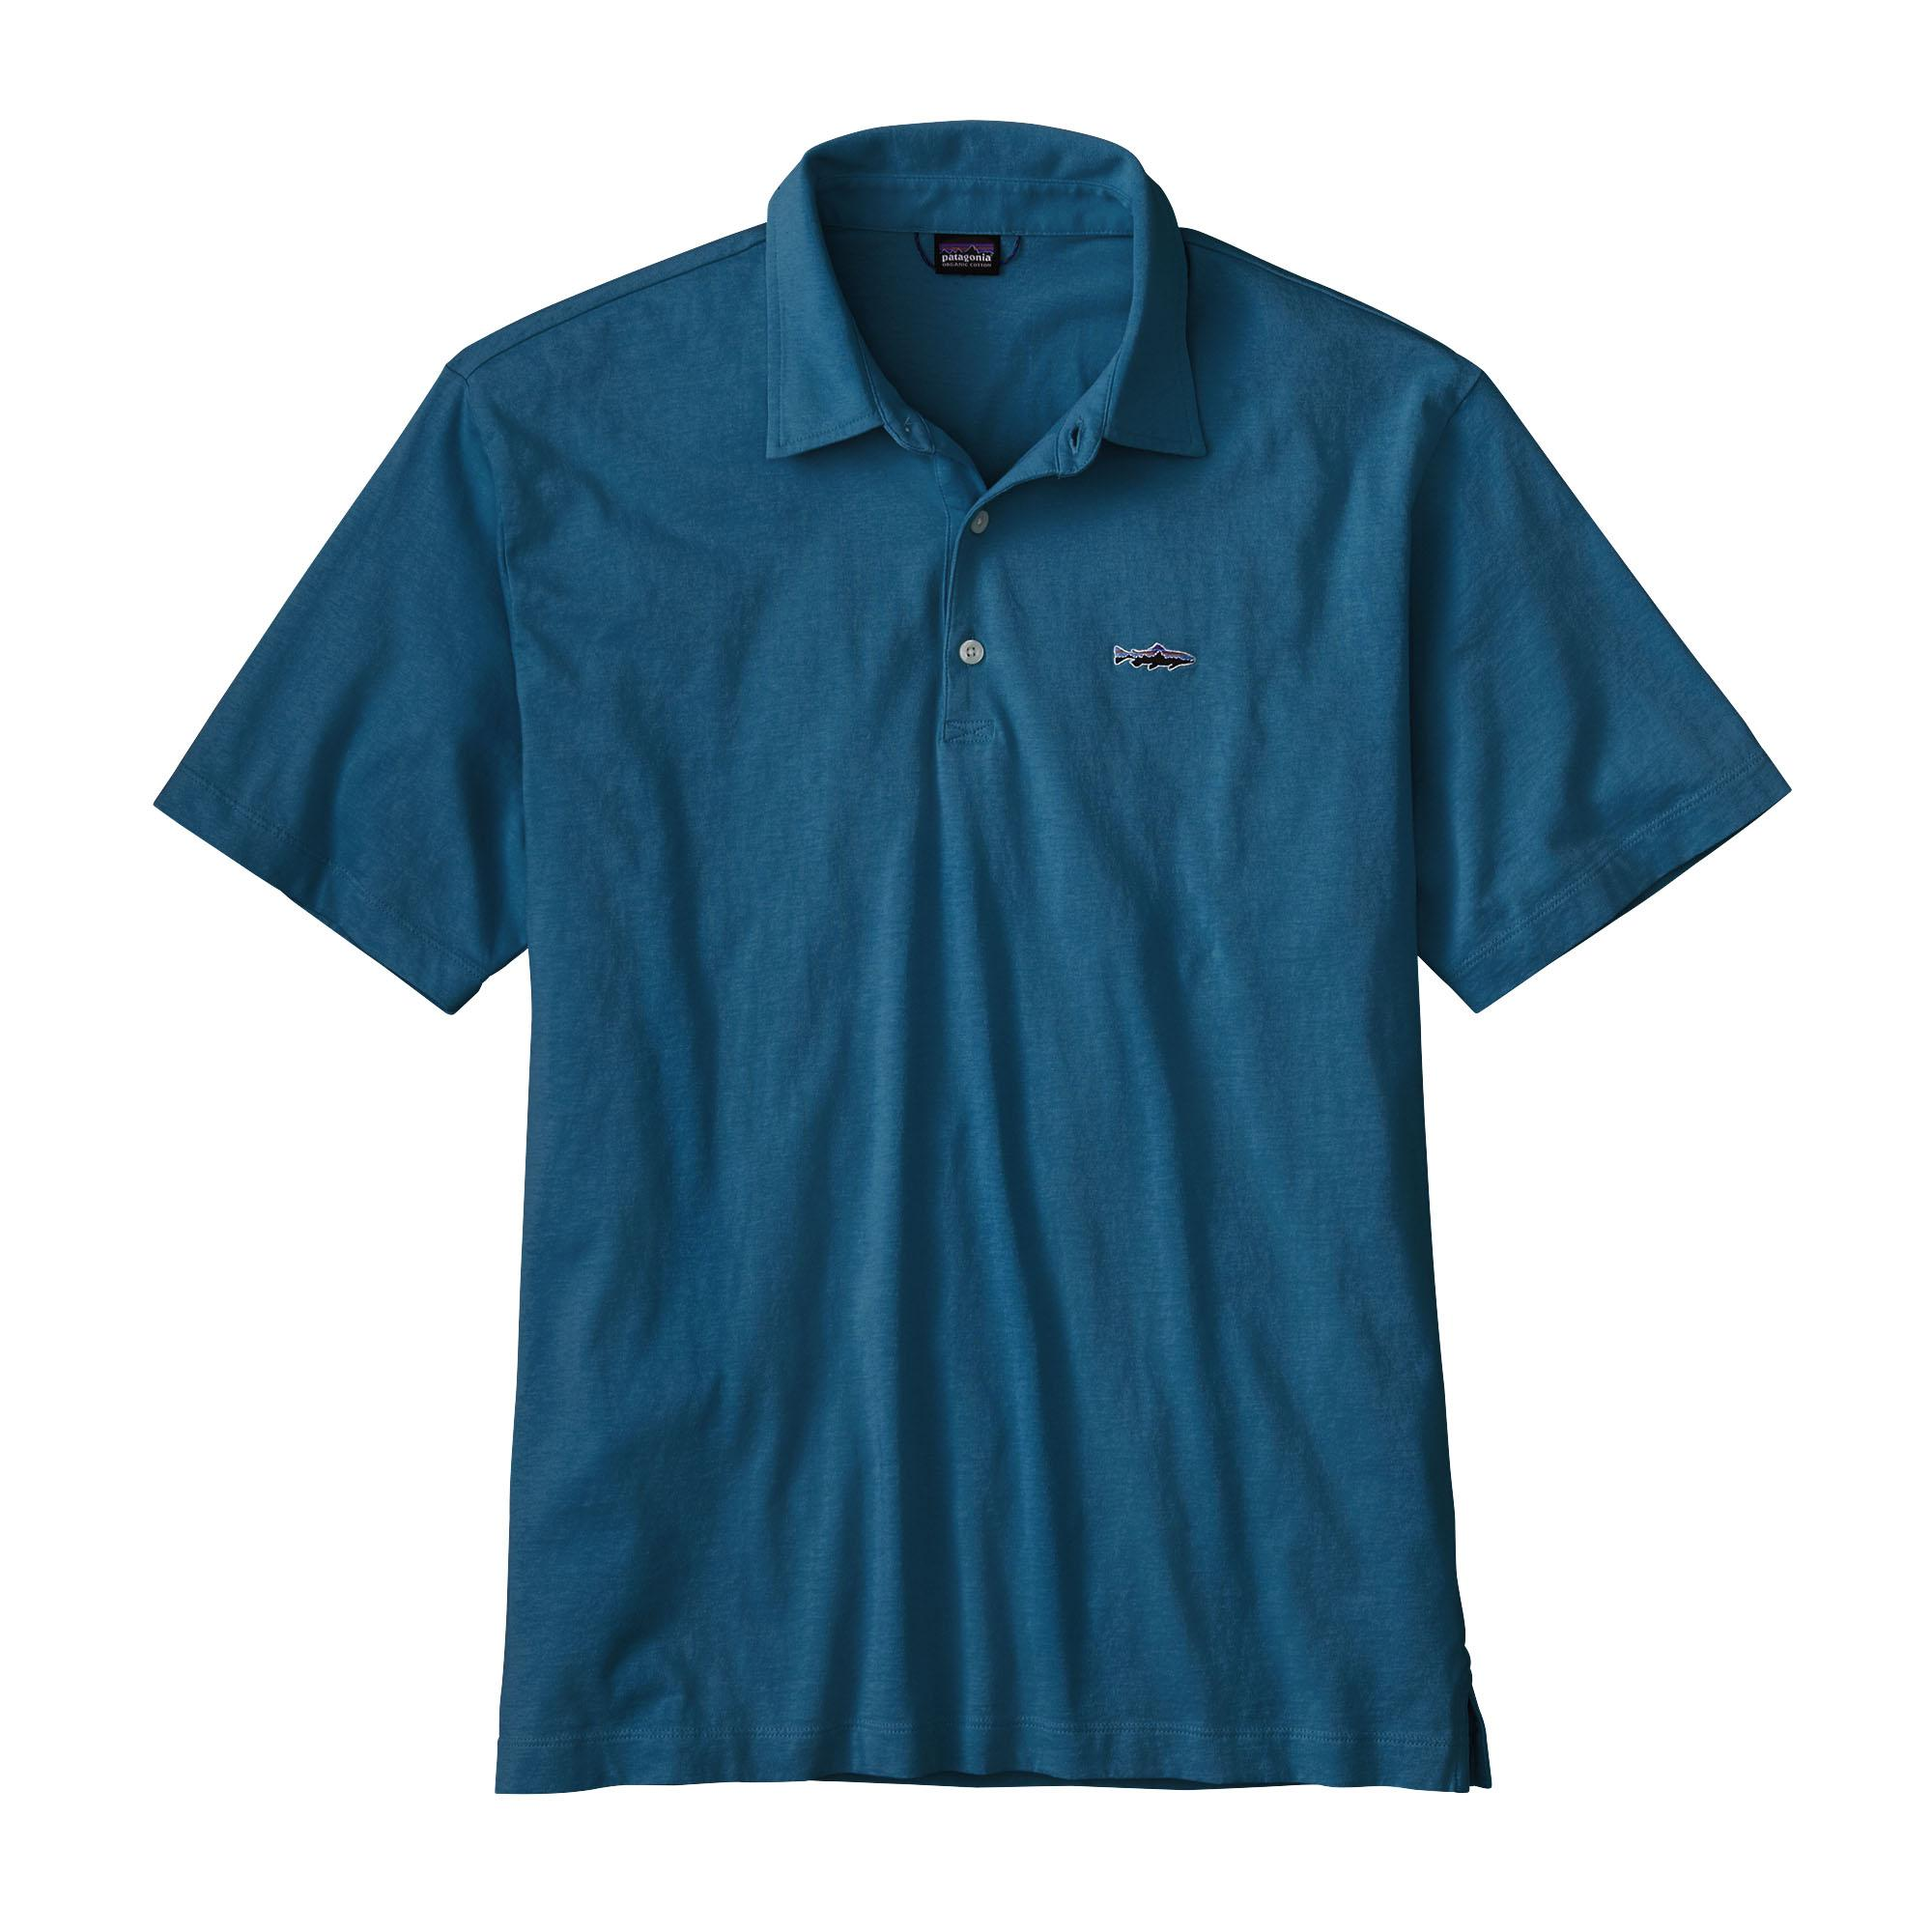 Patagonia Men's Polo- Trout Fitz Roy shirt BSRB_BLUE